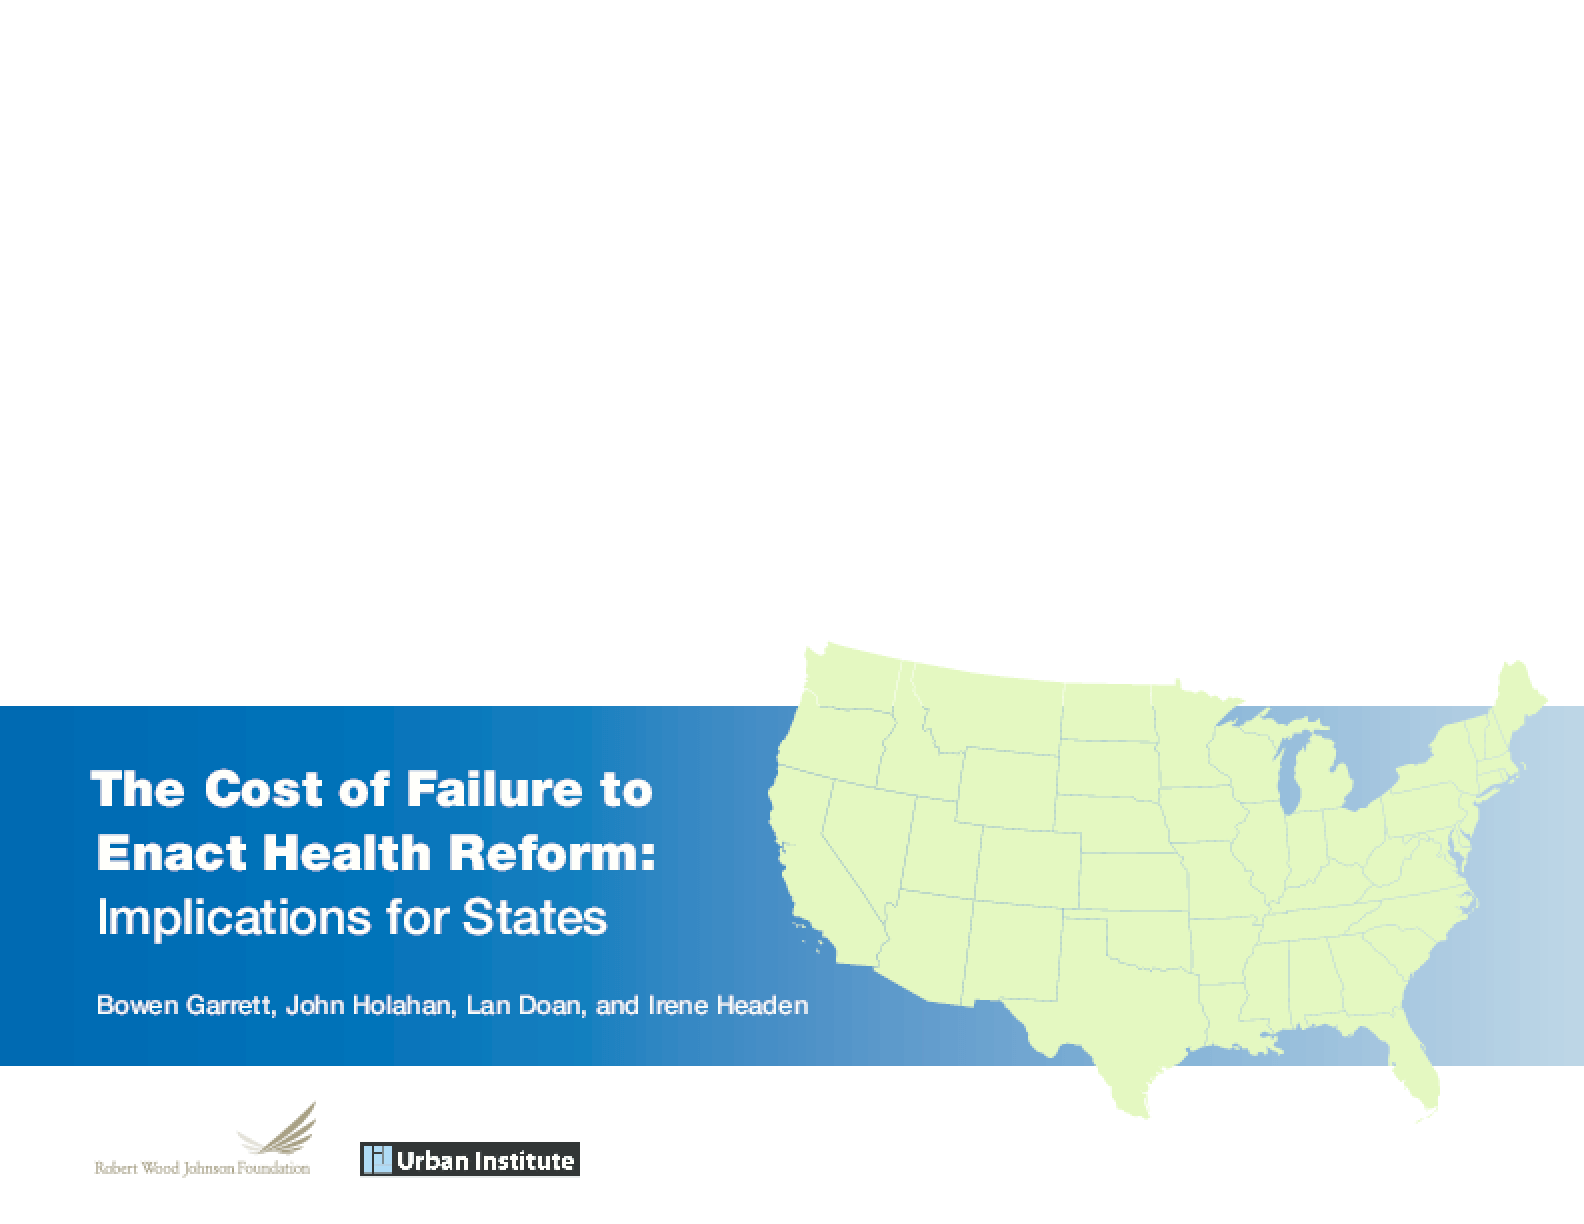 The Cost of Failure to Enact Health Reform: Implications for States